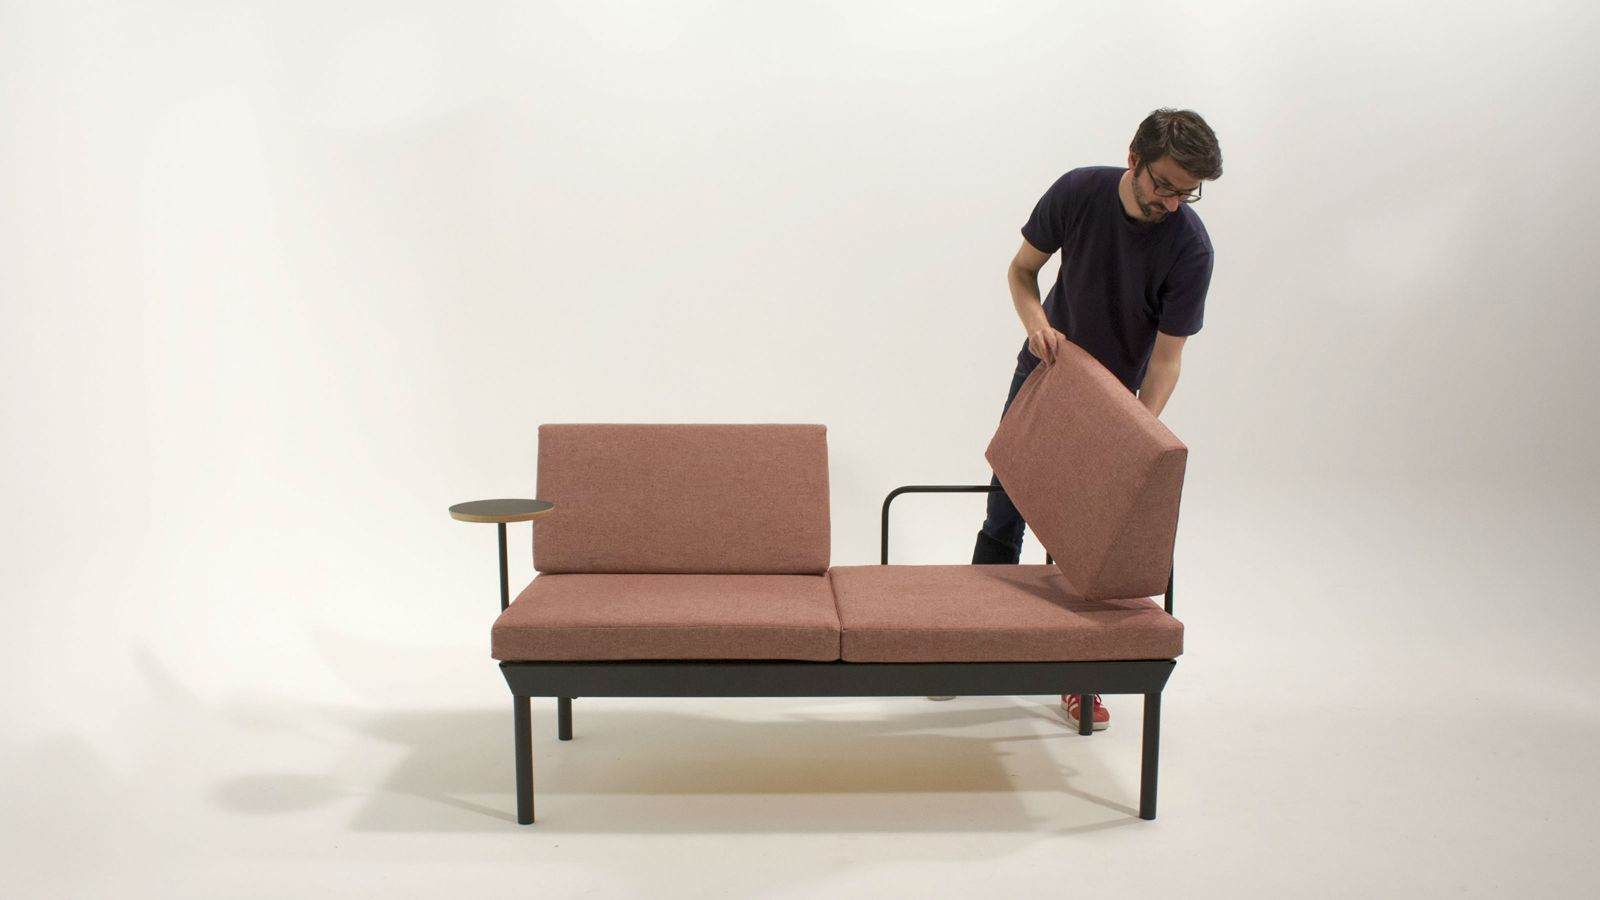 Steven Almond places a cushion on the 30 year sofa he designed for his Master's research.